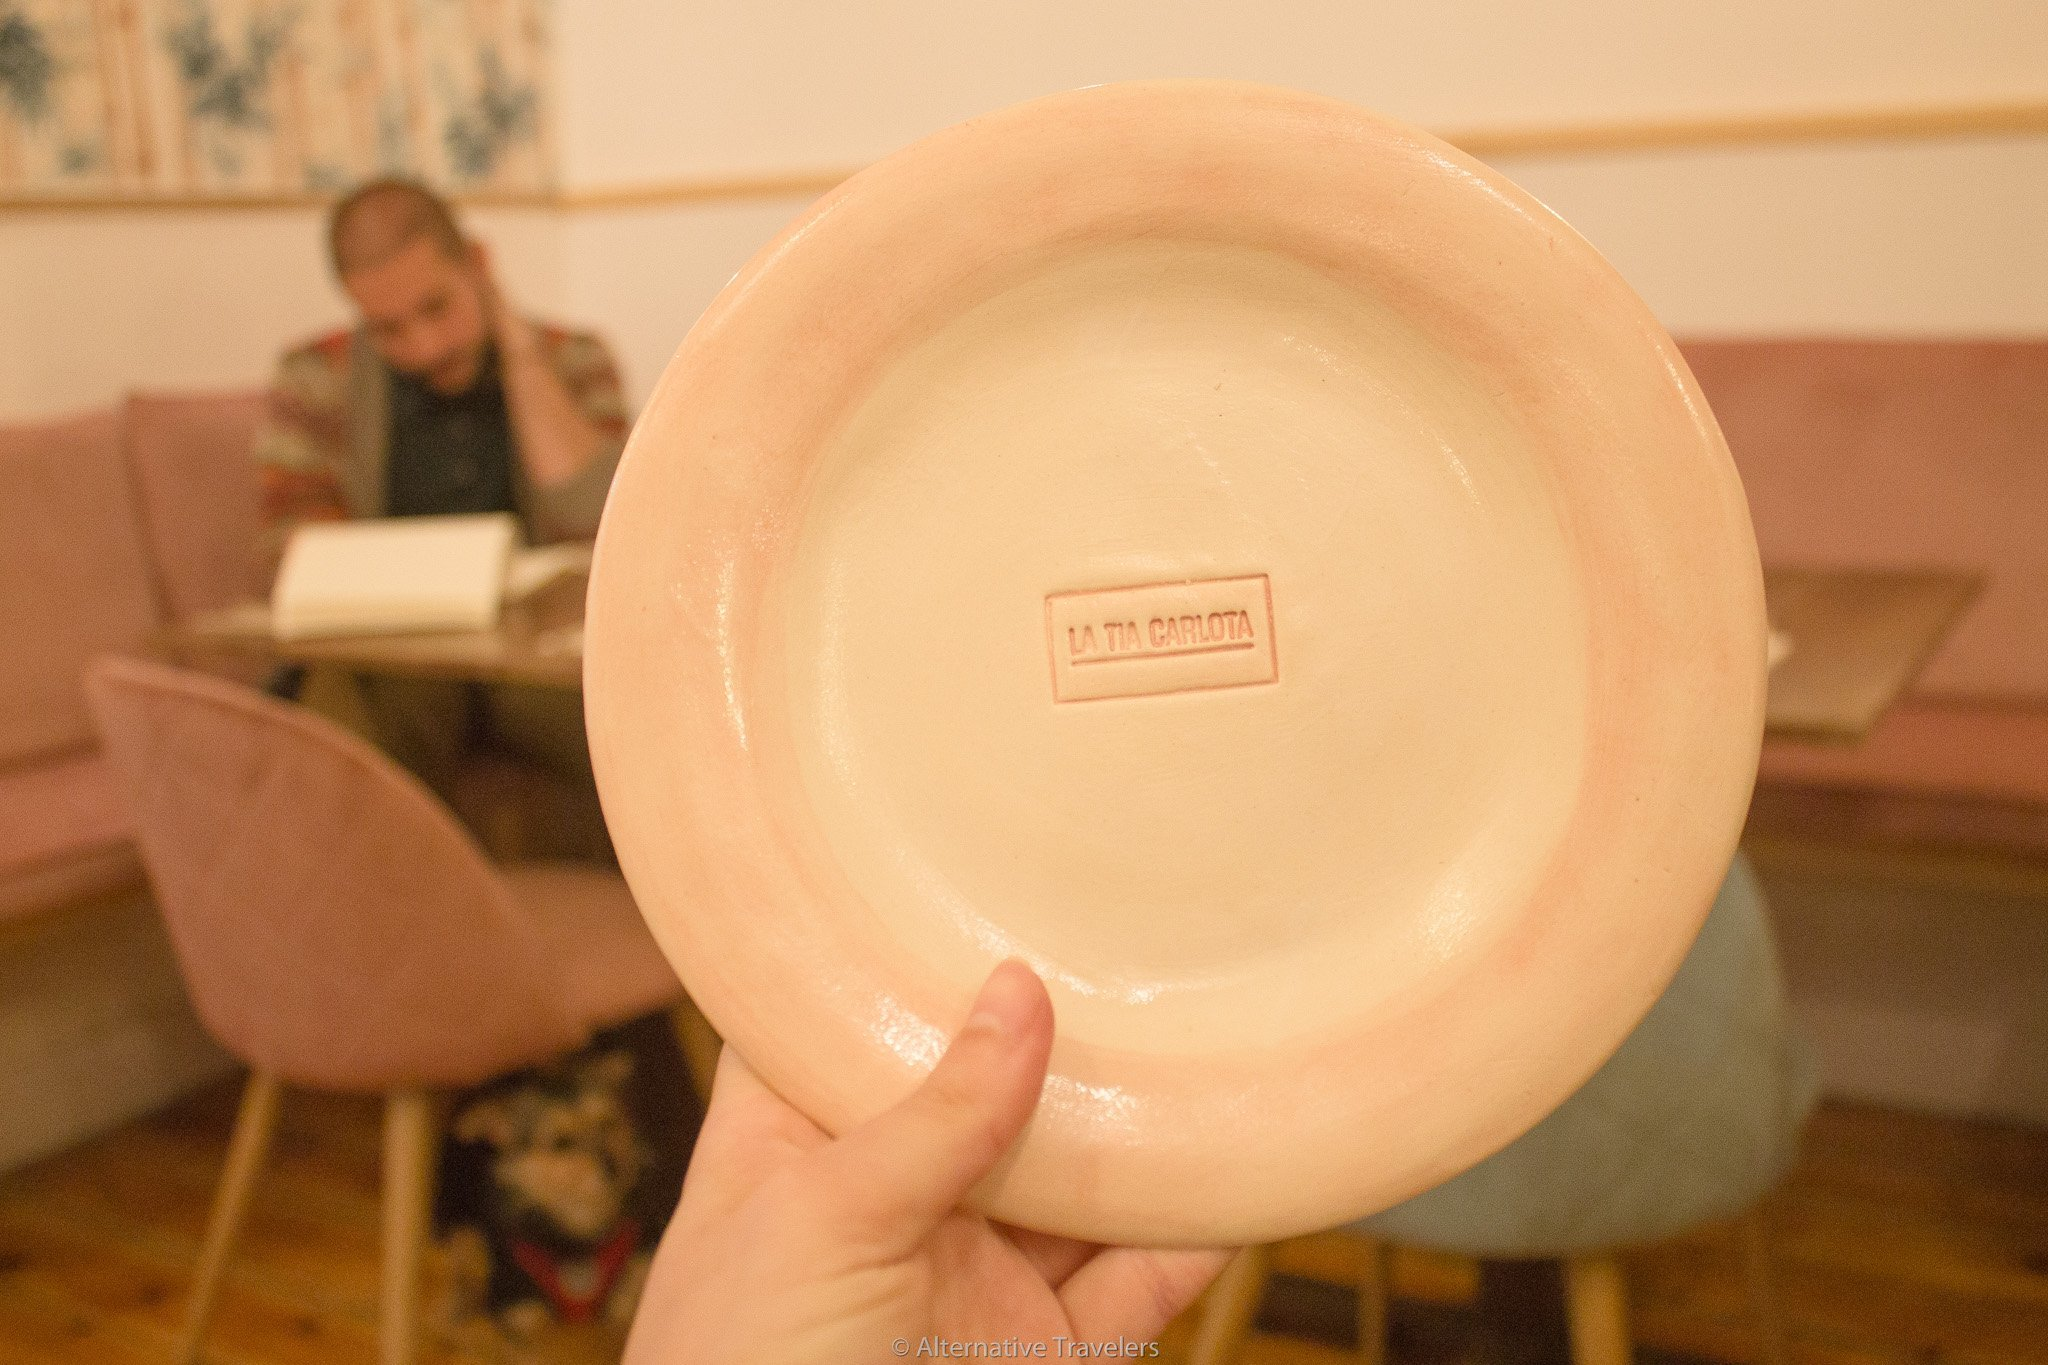 Homemade ceramic plates with La Tia Carlota name | AlternativeTravelers.com